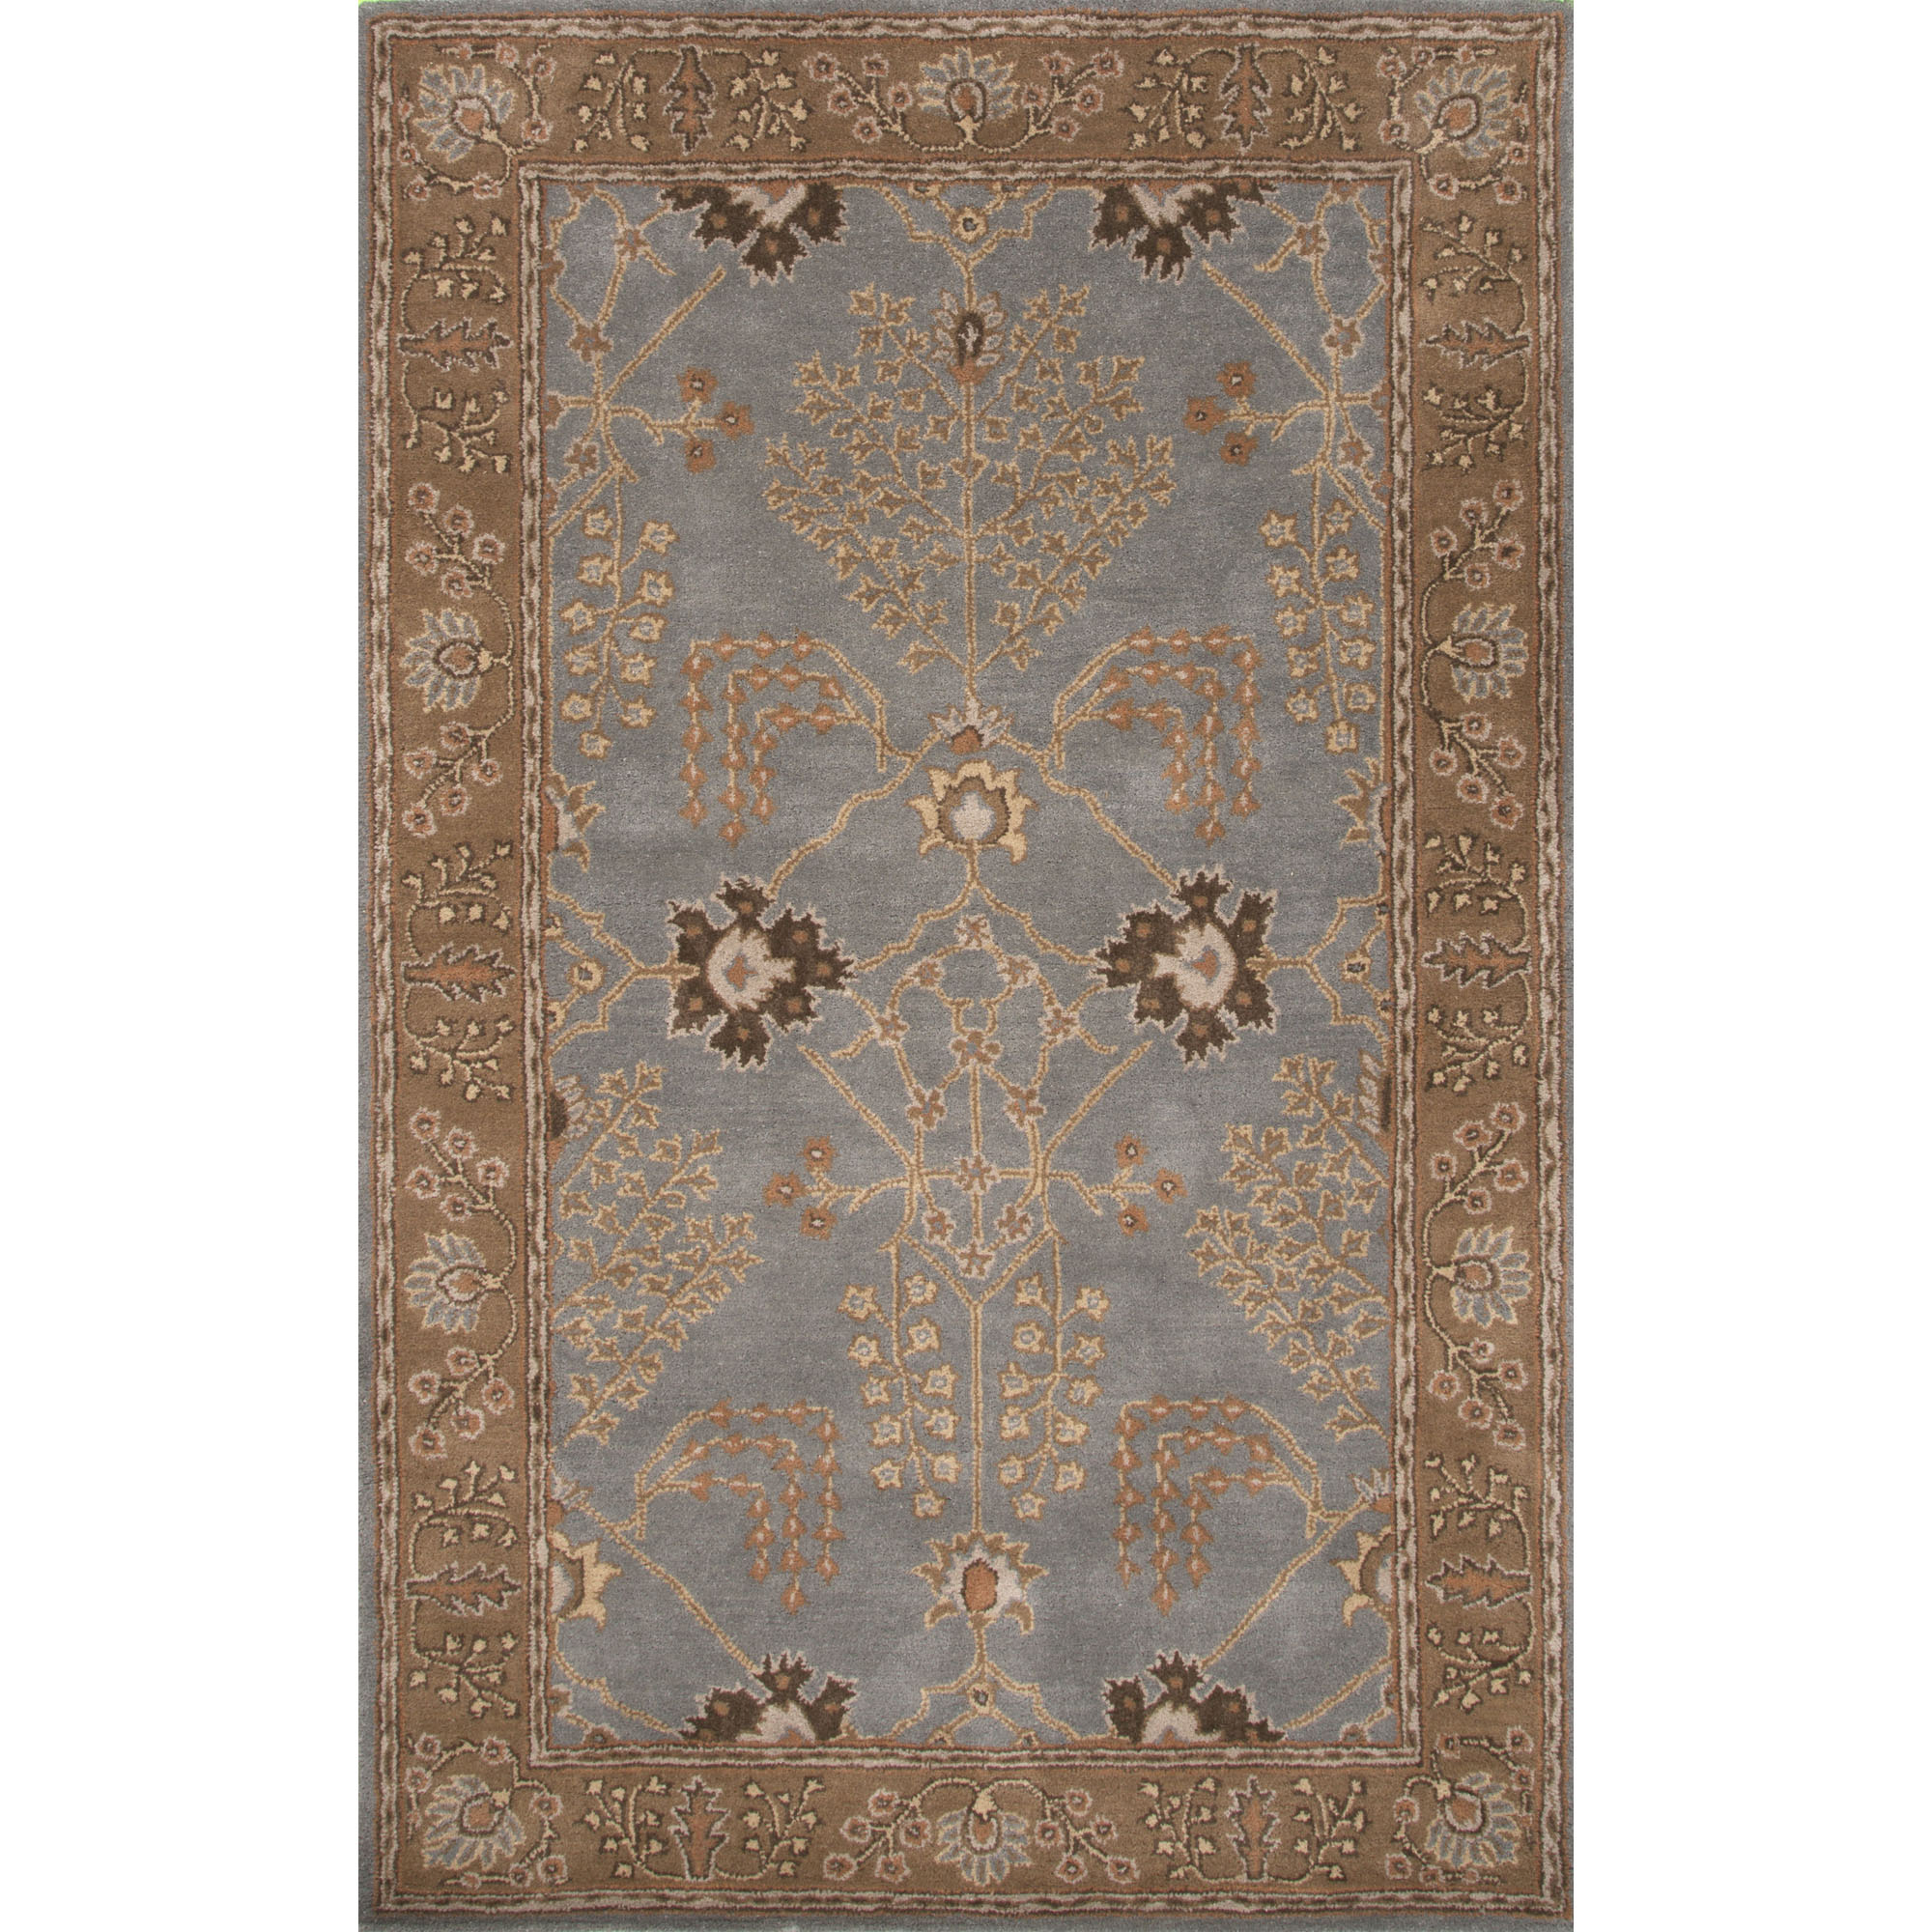 Poeme 2 x 3 Rug by JAIPUR Living at Malouf Furniture Co.